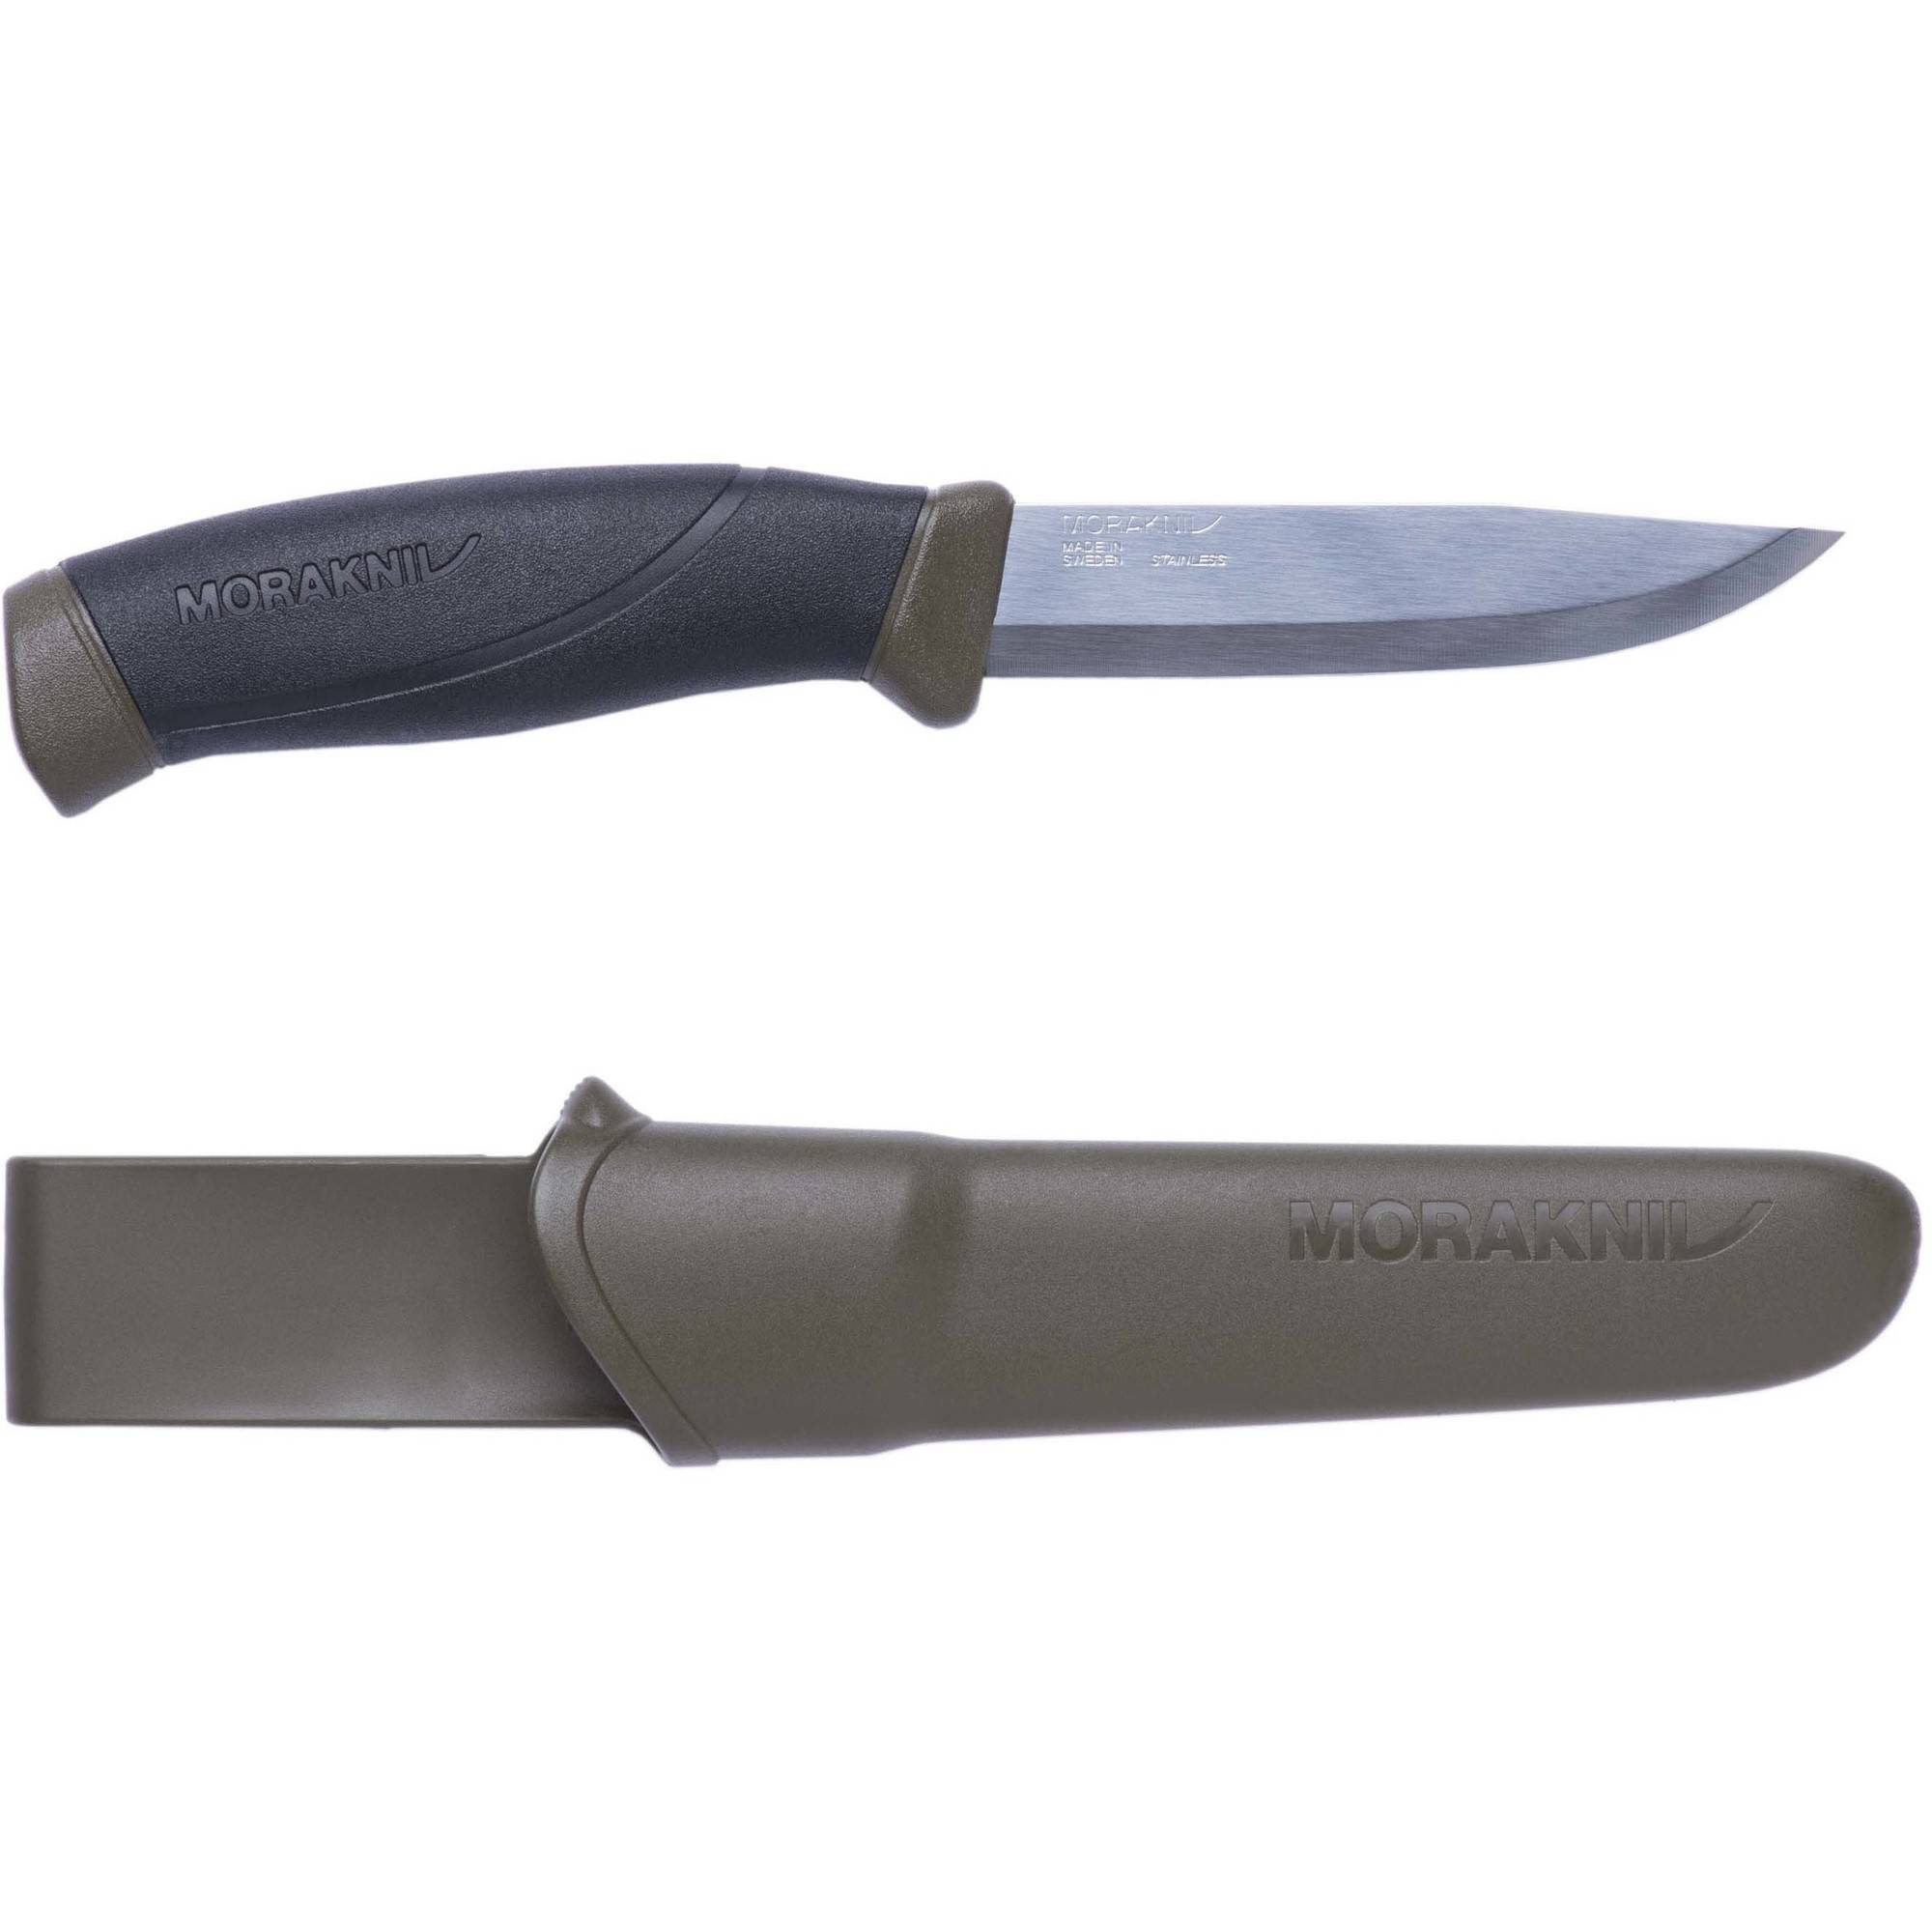 Morakniv Companion Fixed Blade Stainless Steel Knife, Military Green by Mora of Sweden